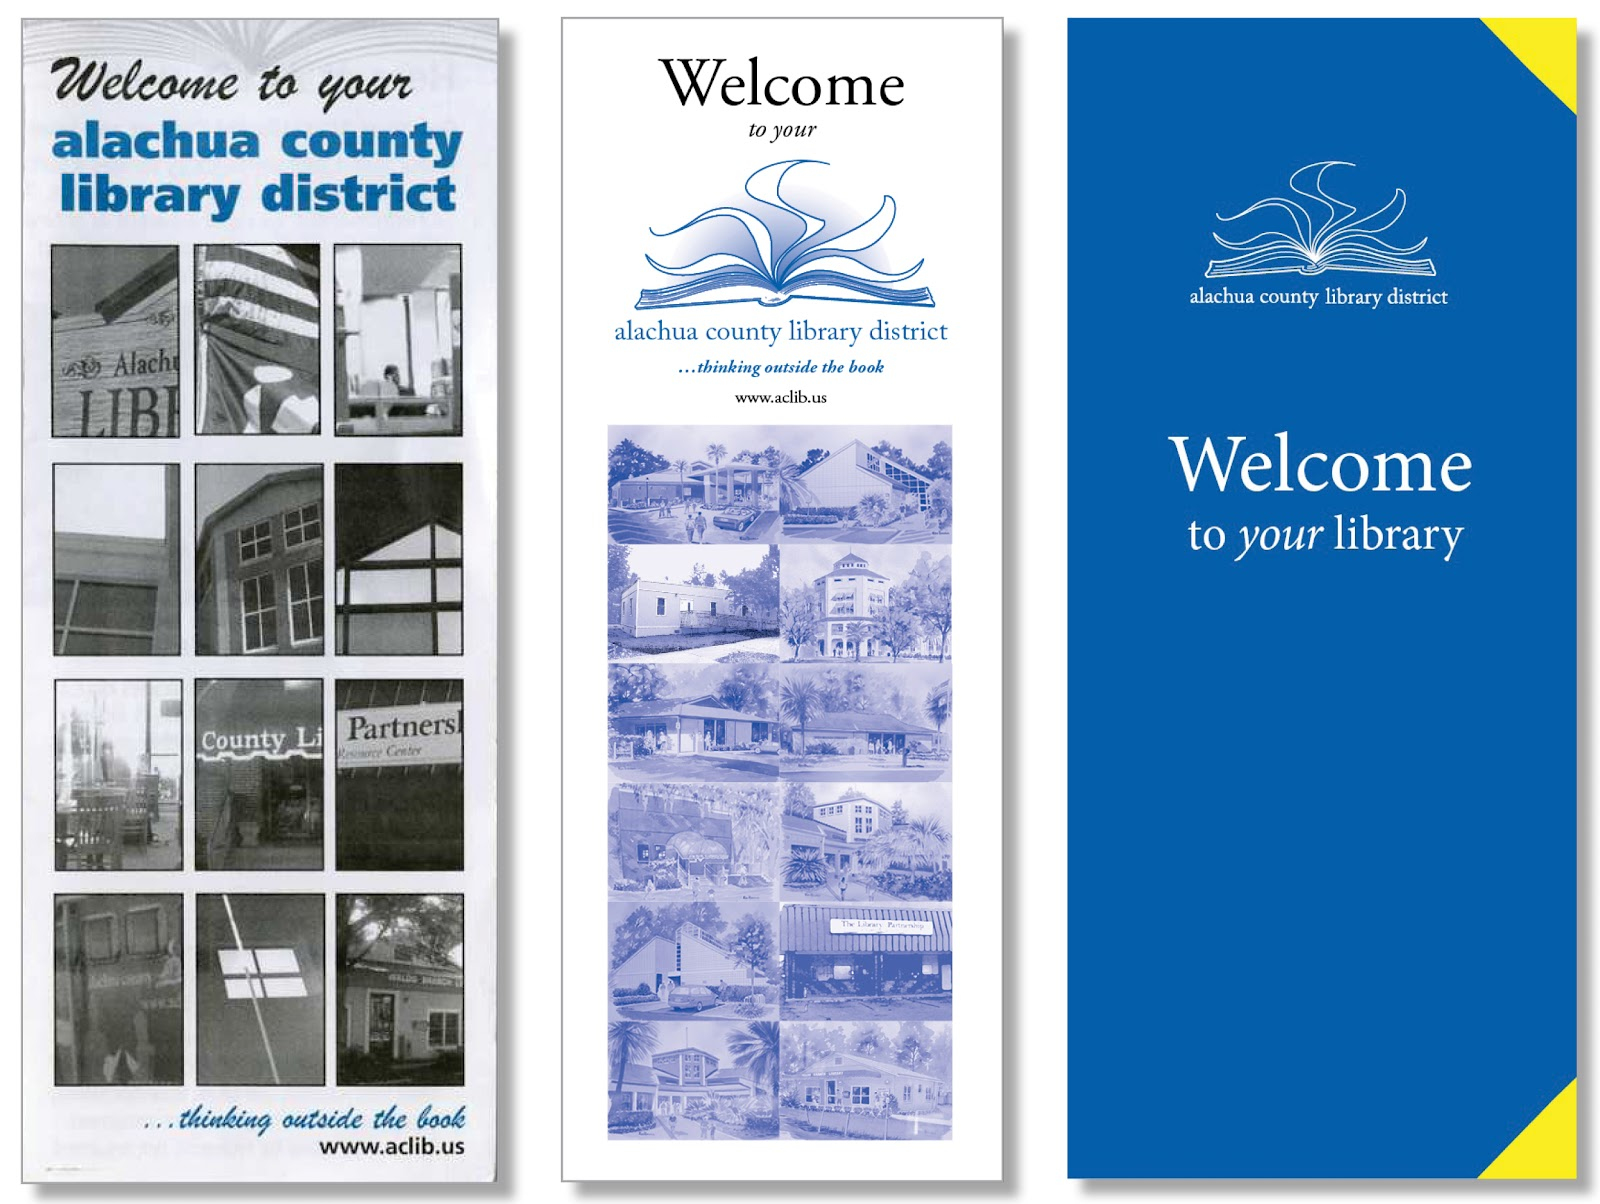 Library Marketing Design The Evolution Of A Library Welcome Brochure - Library brochure templates